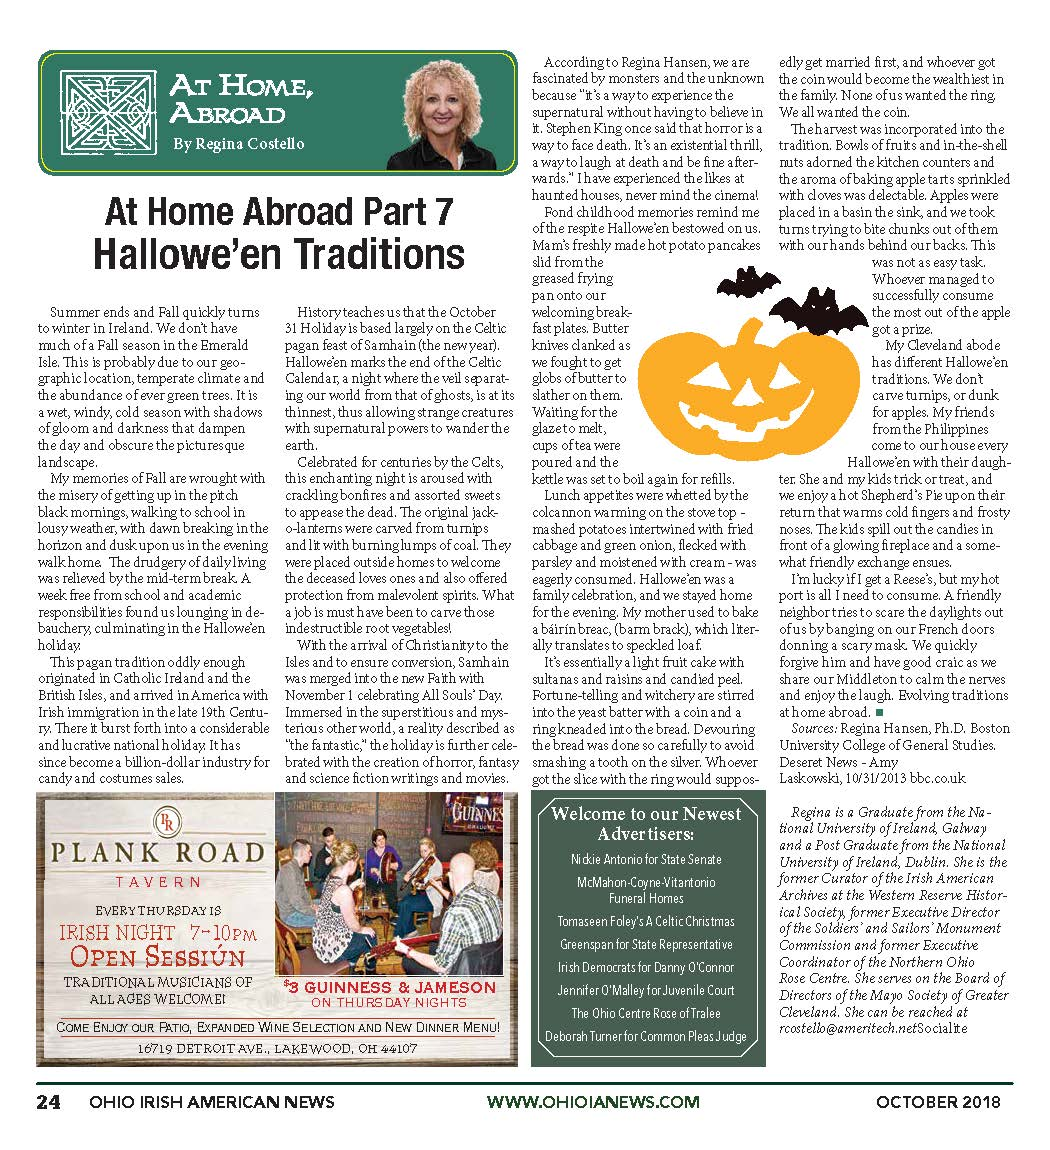 October 2018_SMALL-FINAL_Page_24 - Ohio Irish American News